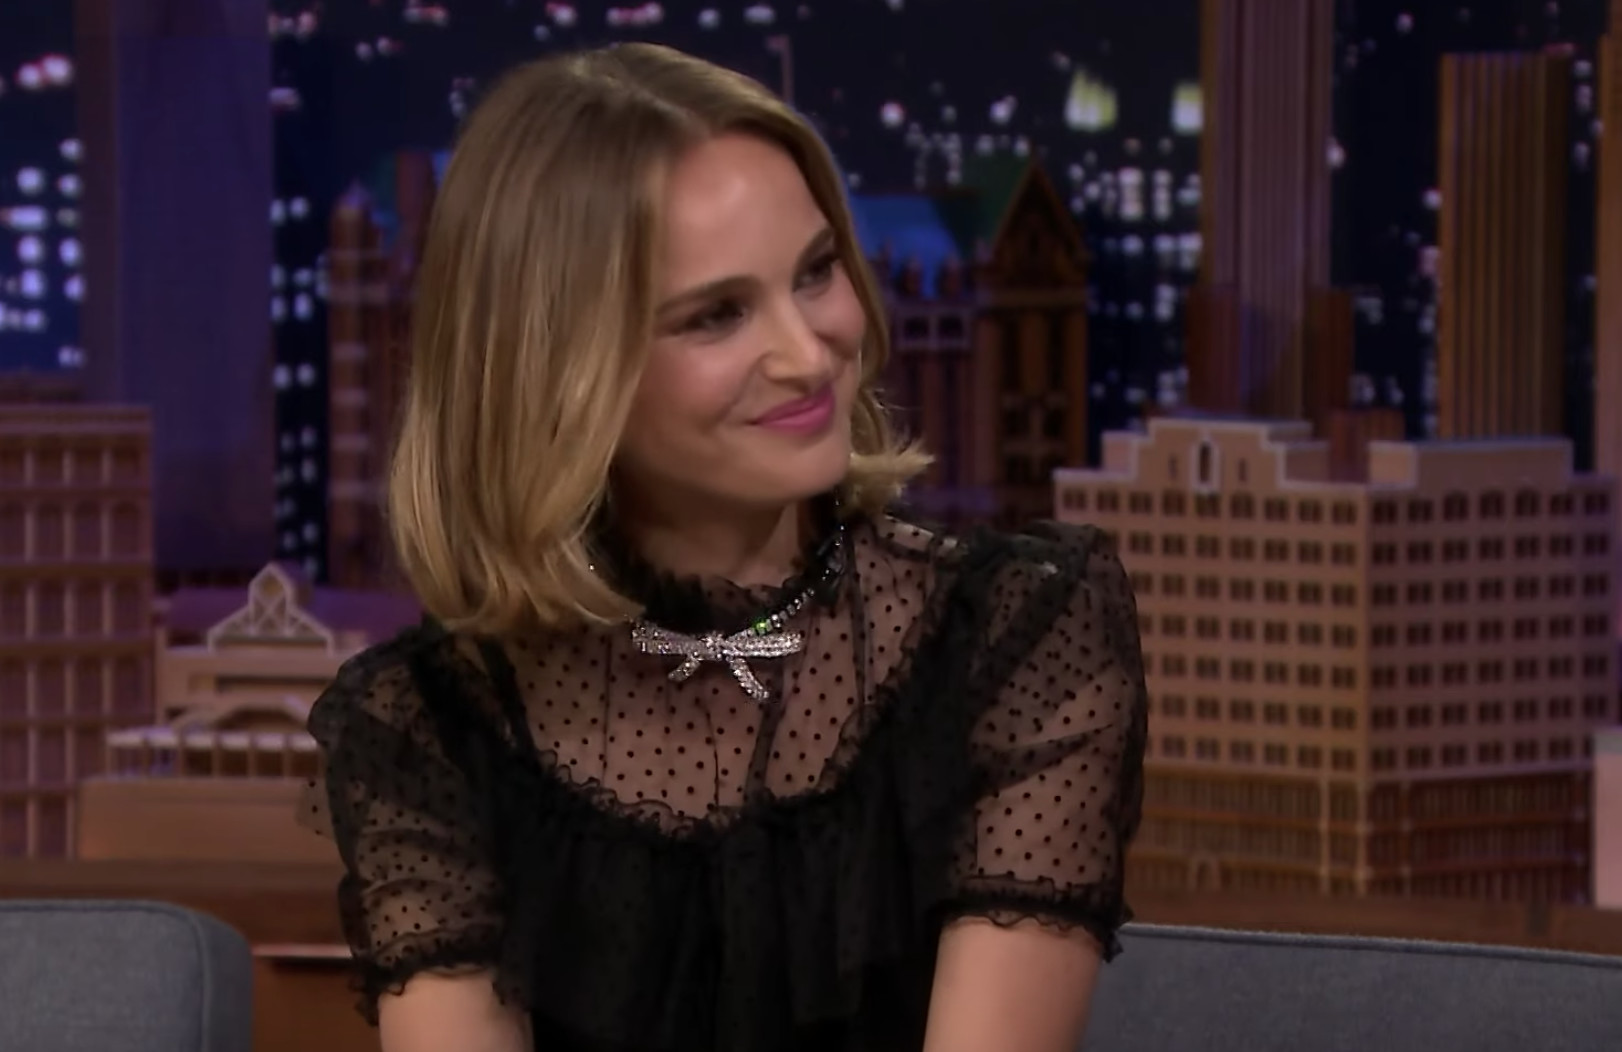 Natalie Portman Talks 'Nerve-Wracking' Comic-Con Announcement of 'Thor' Return on 'Fallon'